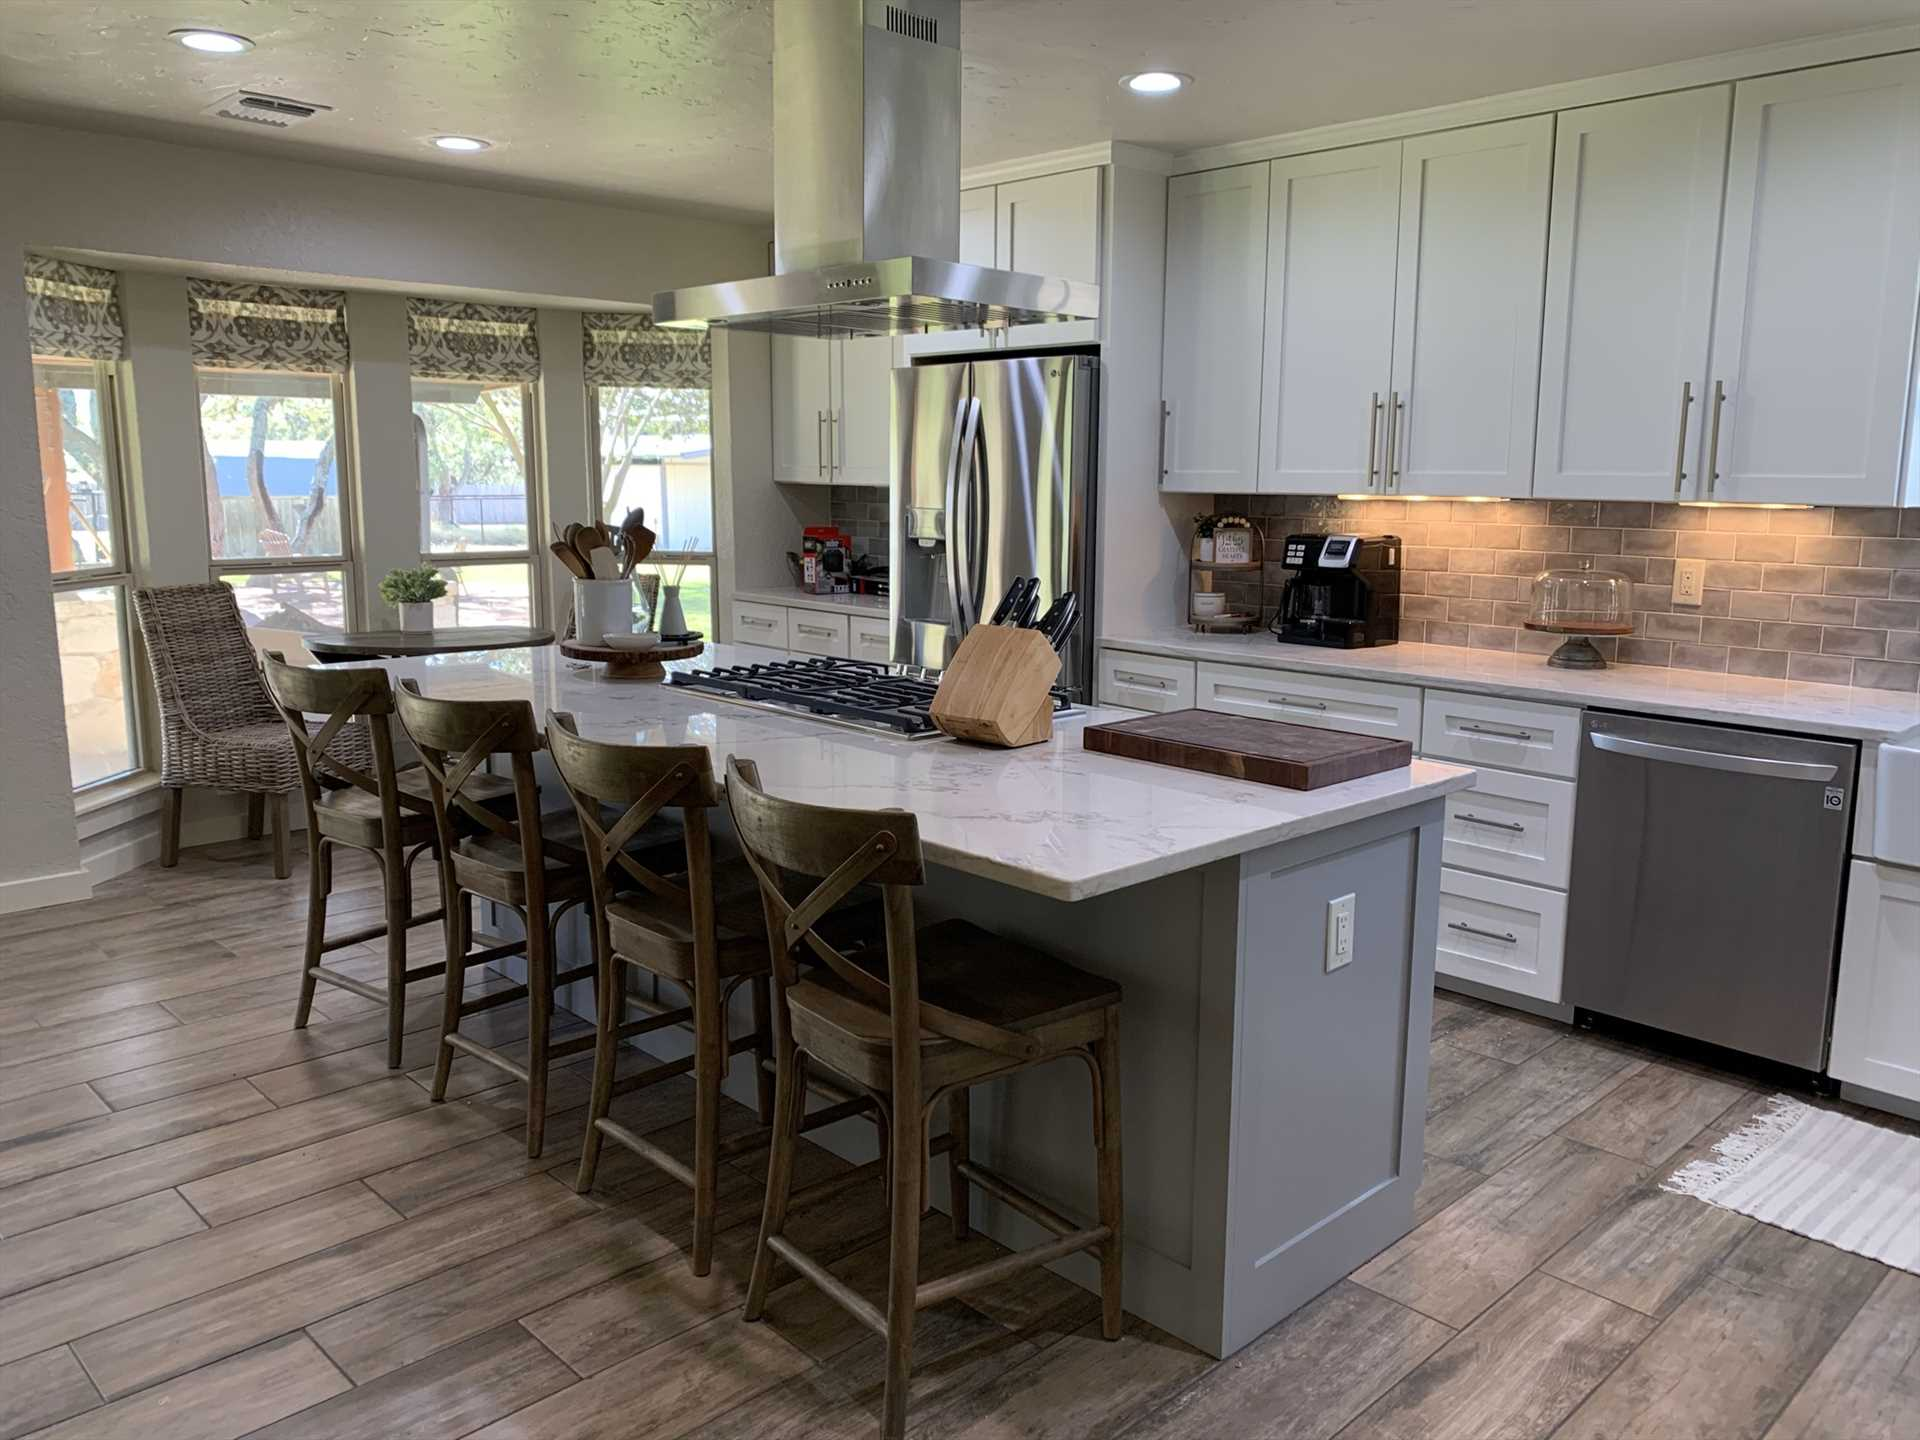 Sharp, stylish, and newly renovated, the kitchen space is designed to be both functional and fun!